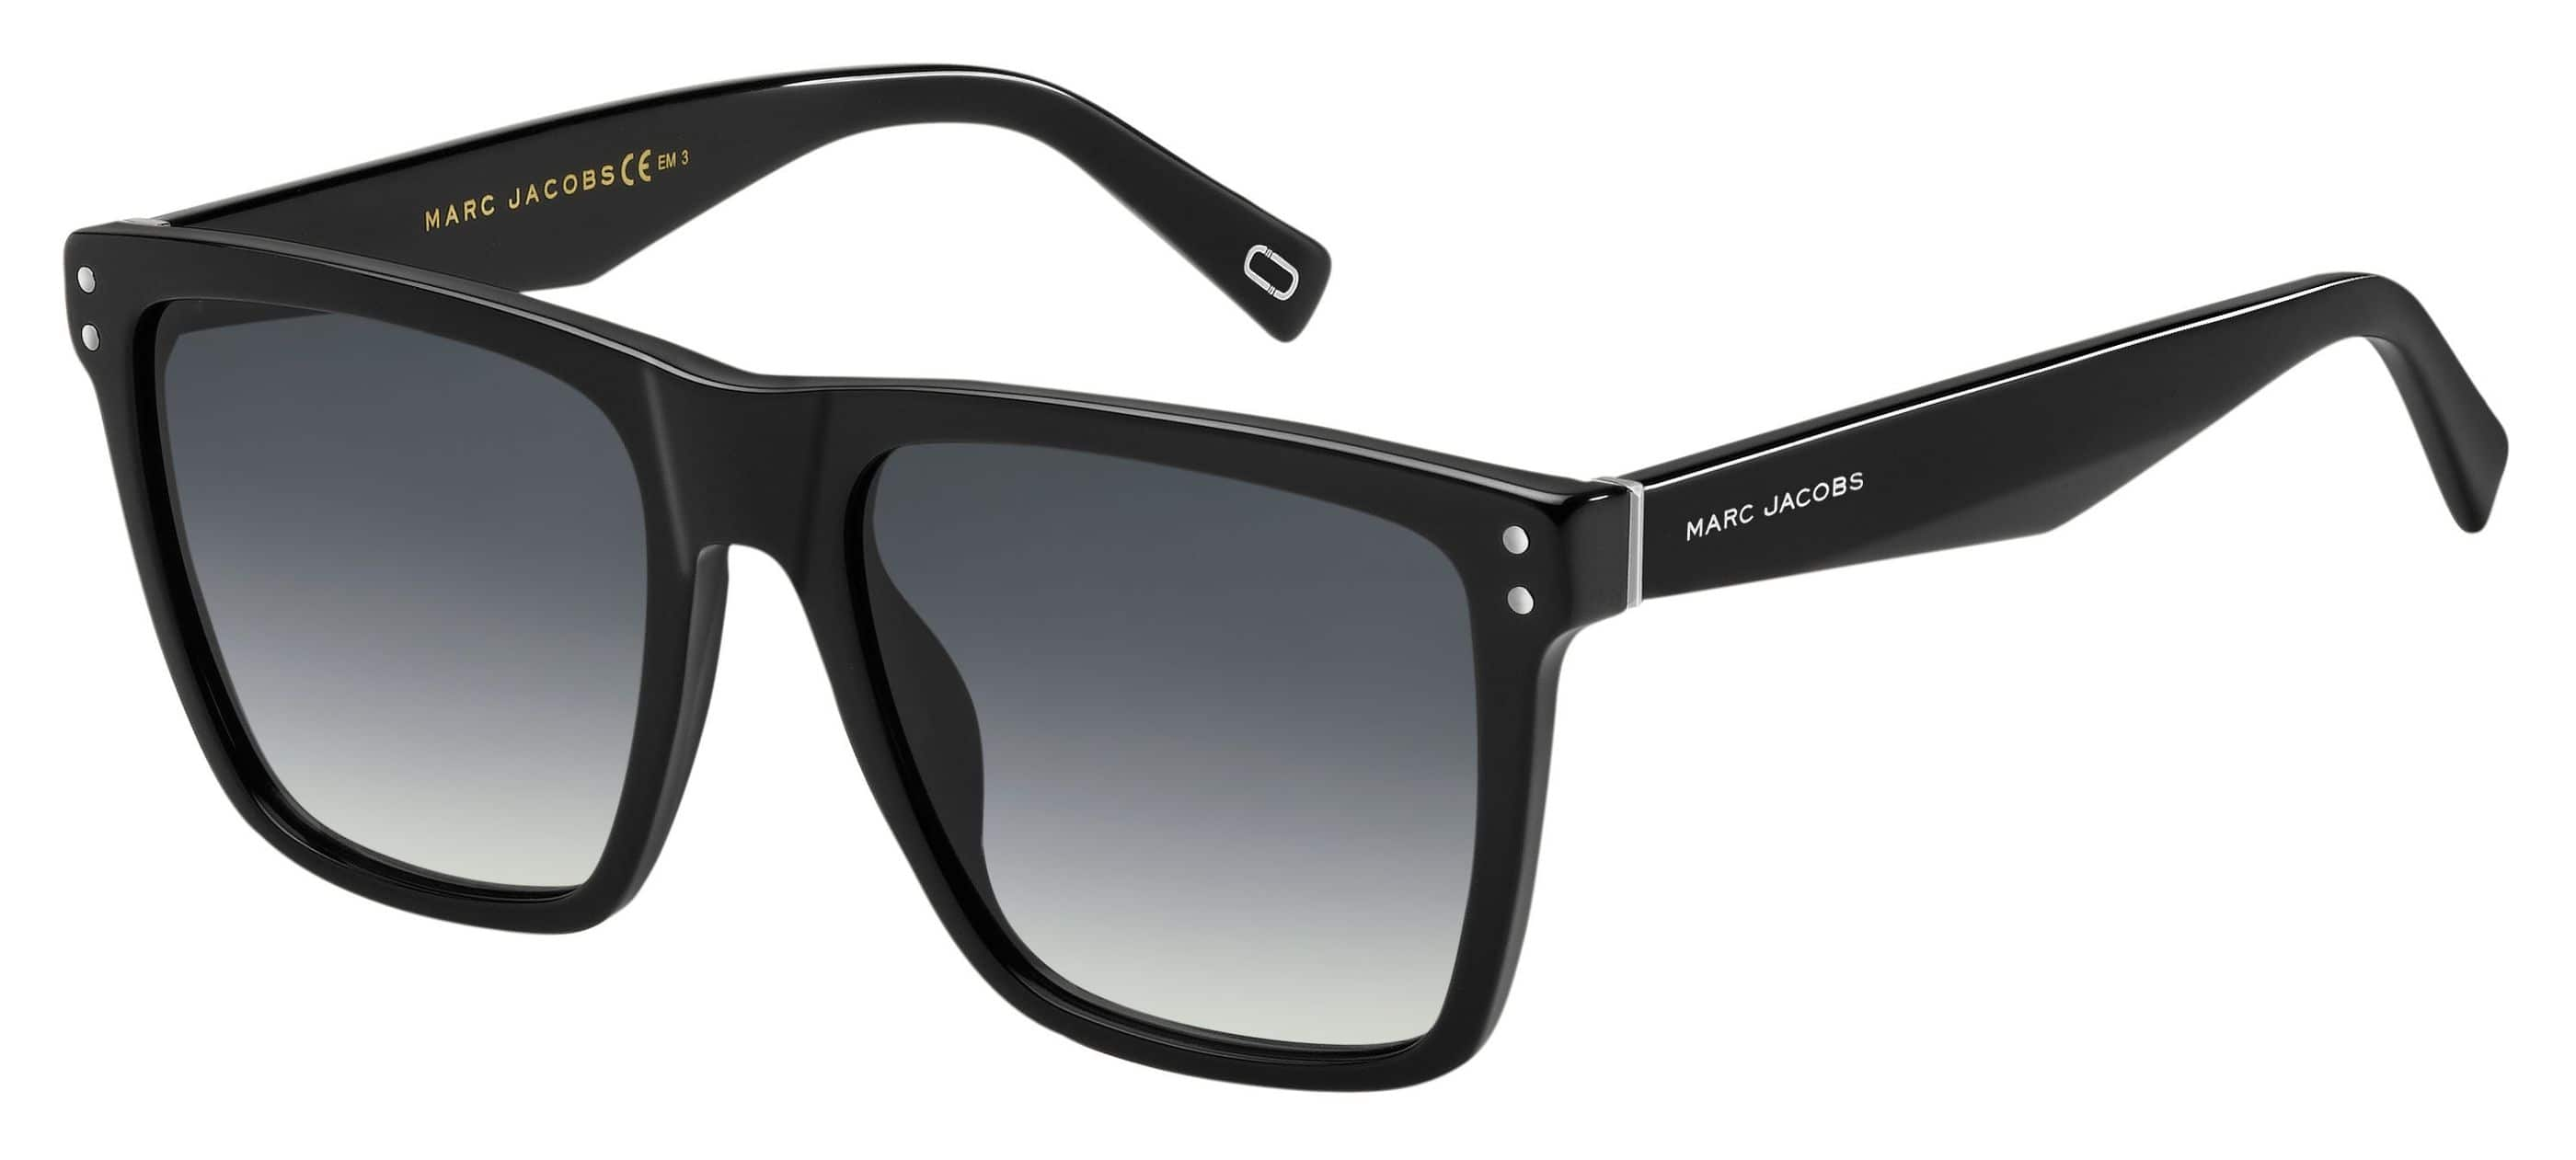 3f5827aefa7 Men s Cat Eye Sunglasses By MARC JACOBS For  39.99 - Free Shipping ...